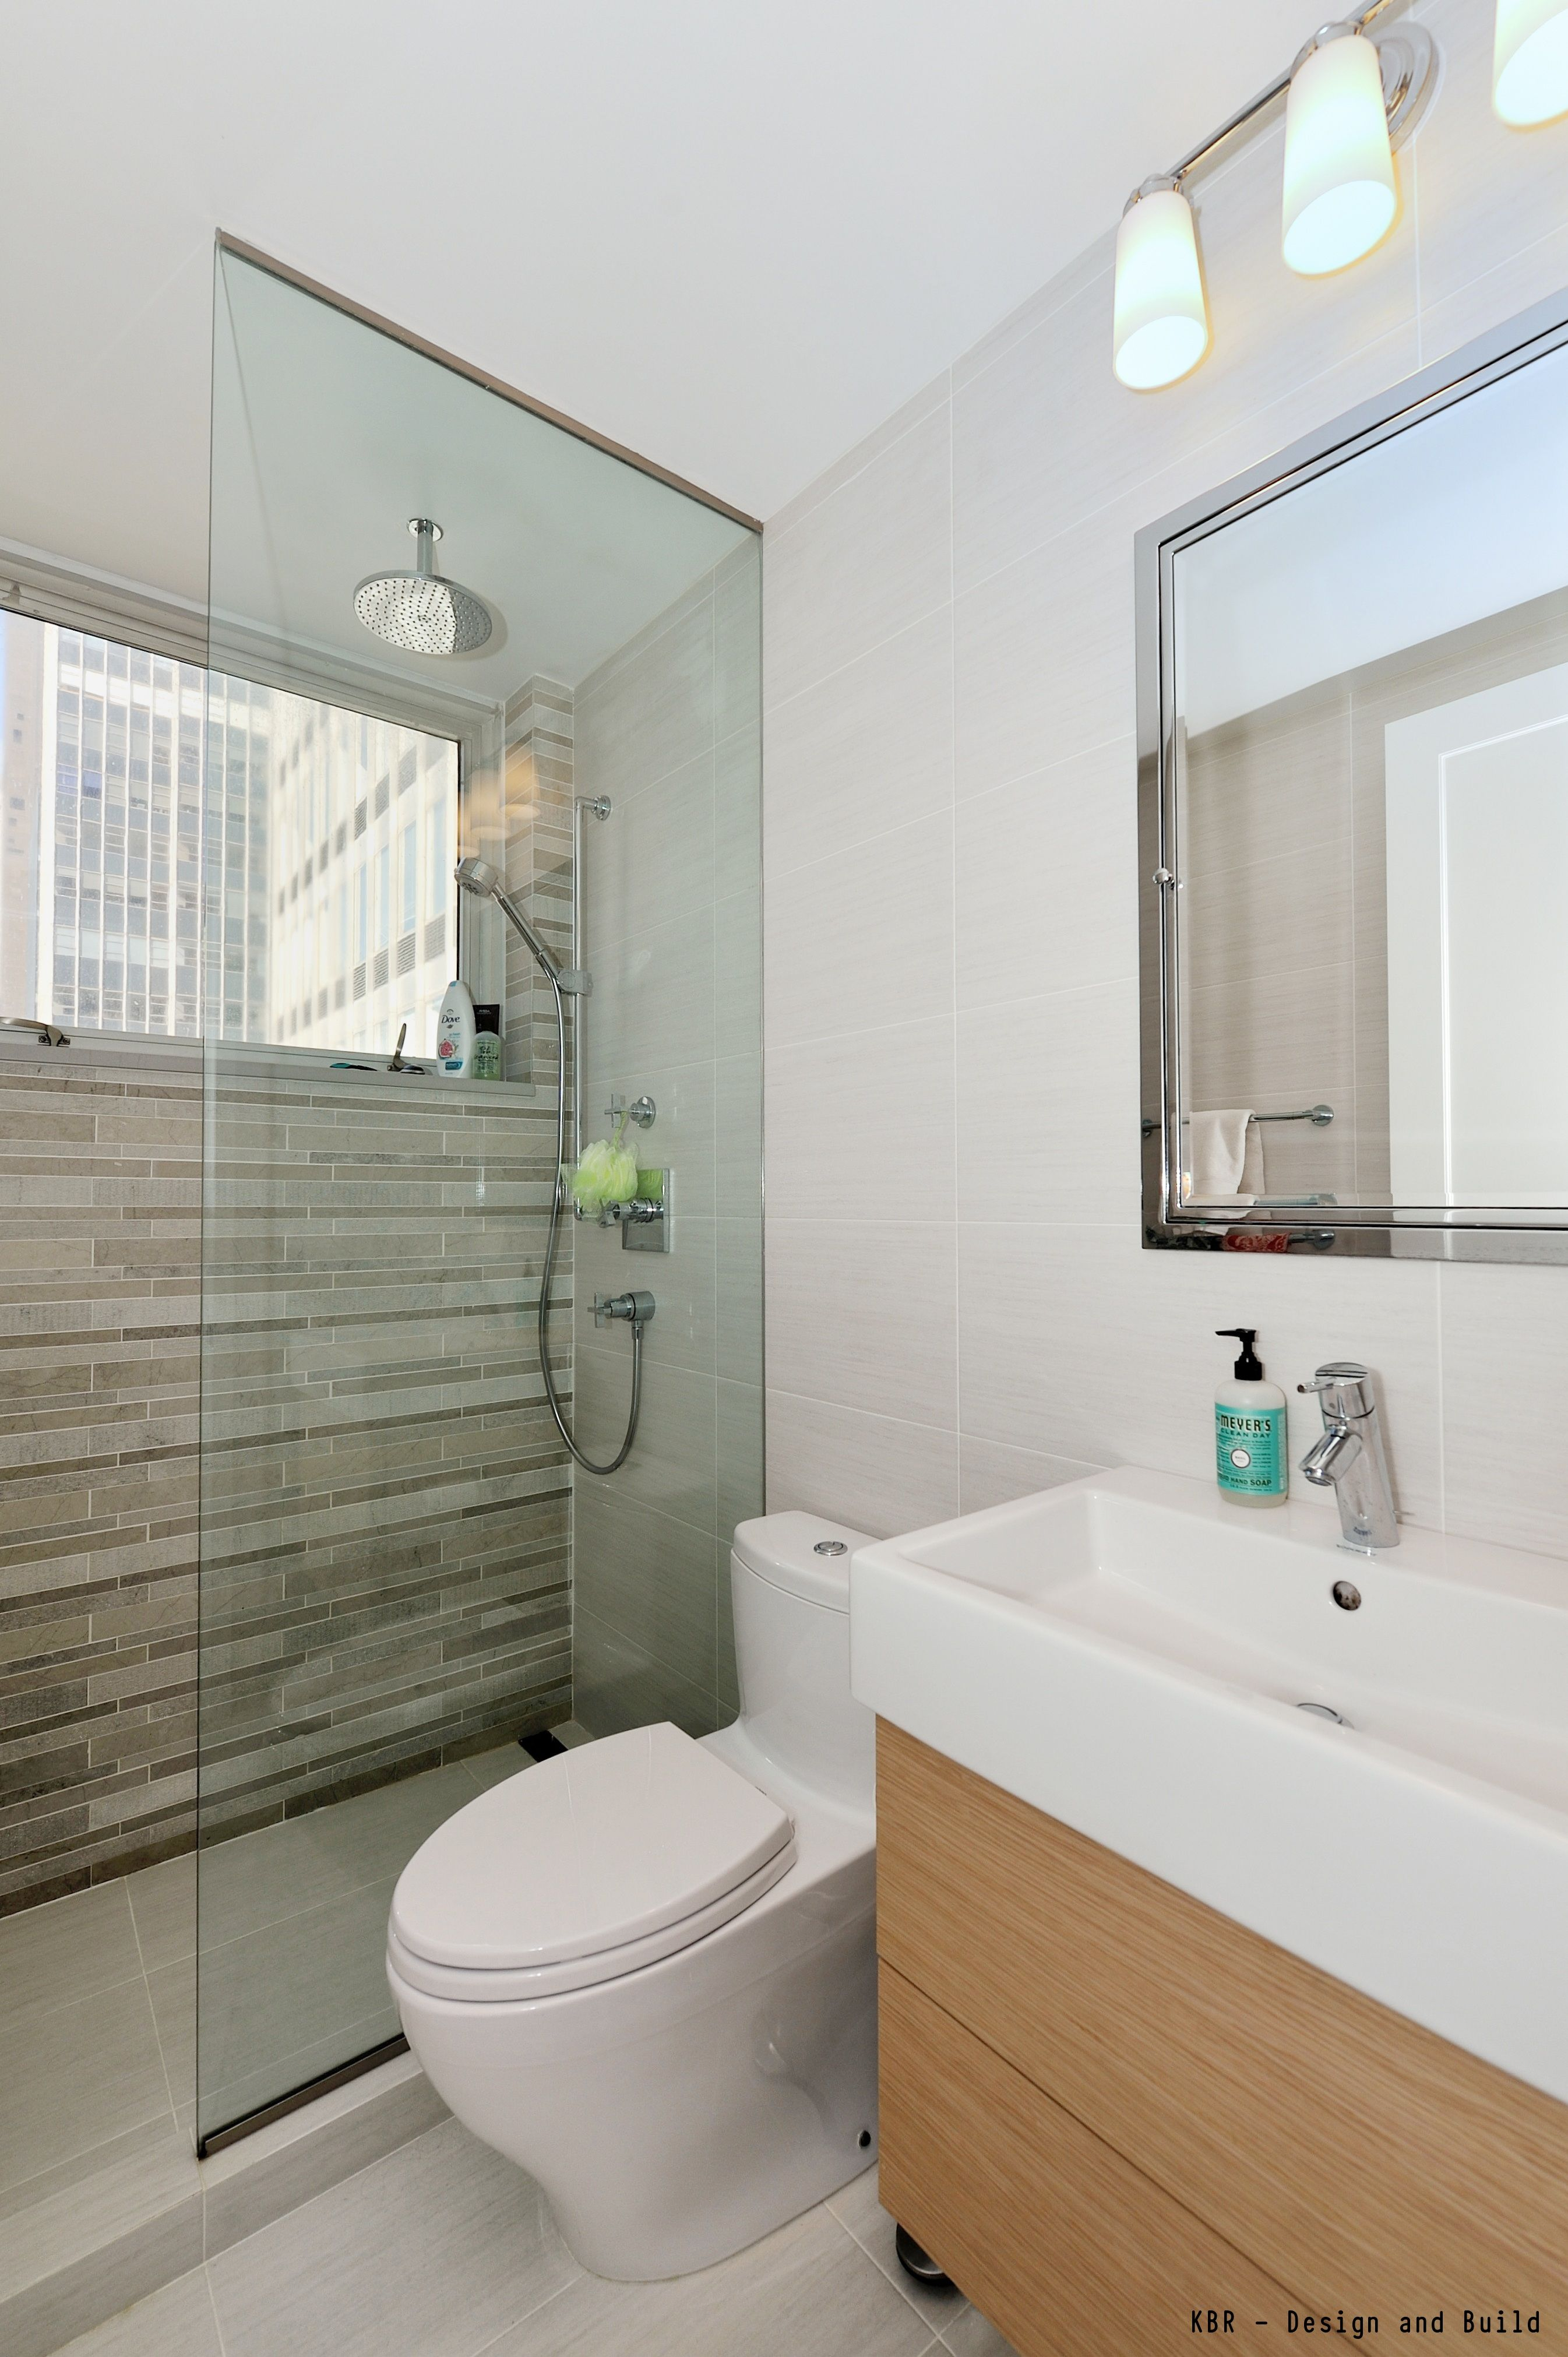 A Decent Size Shower With A Window, Accent Wall And